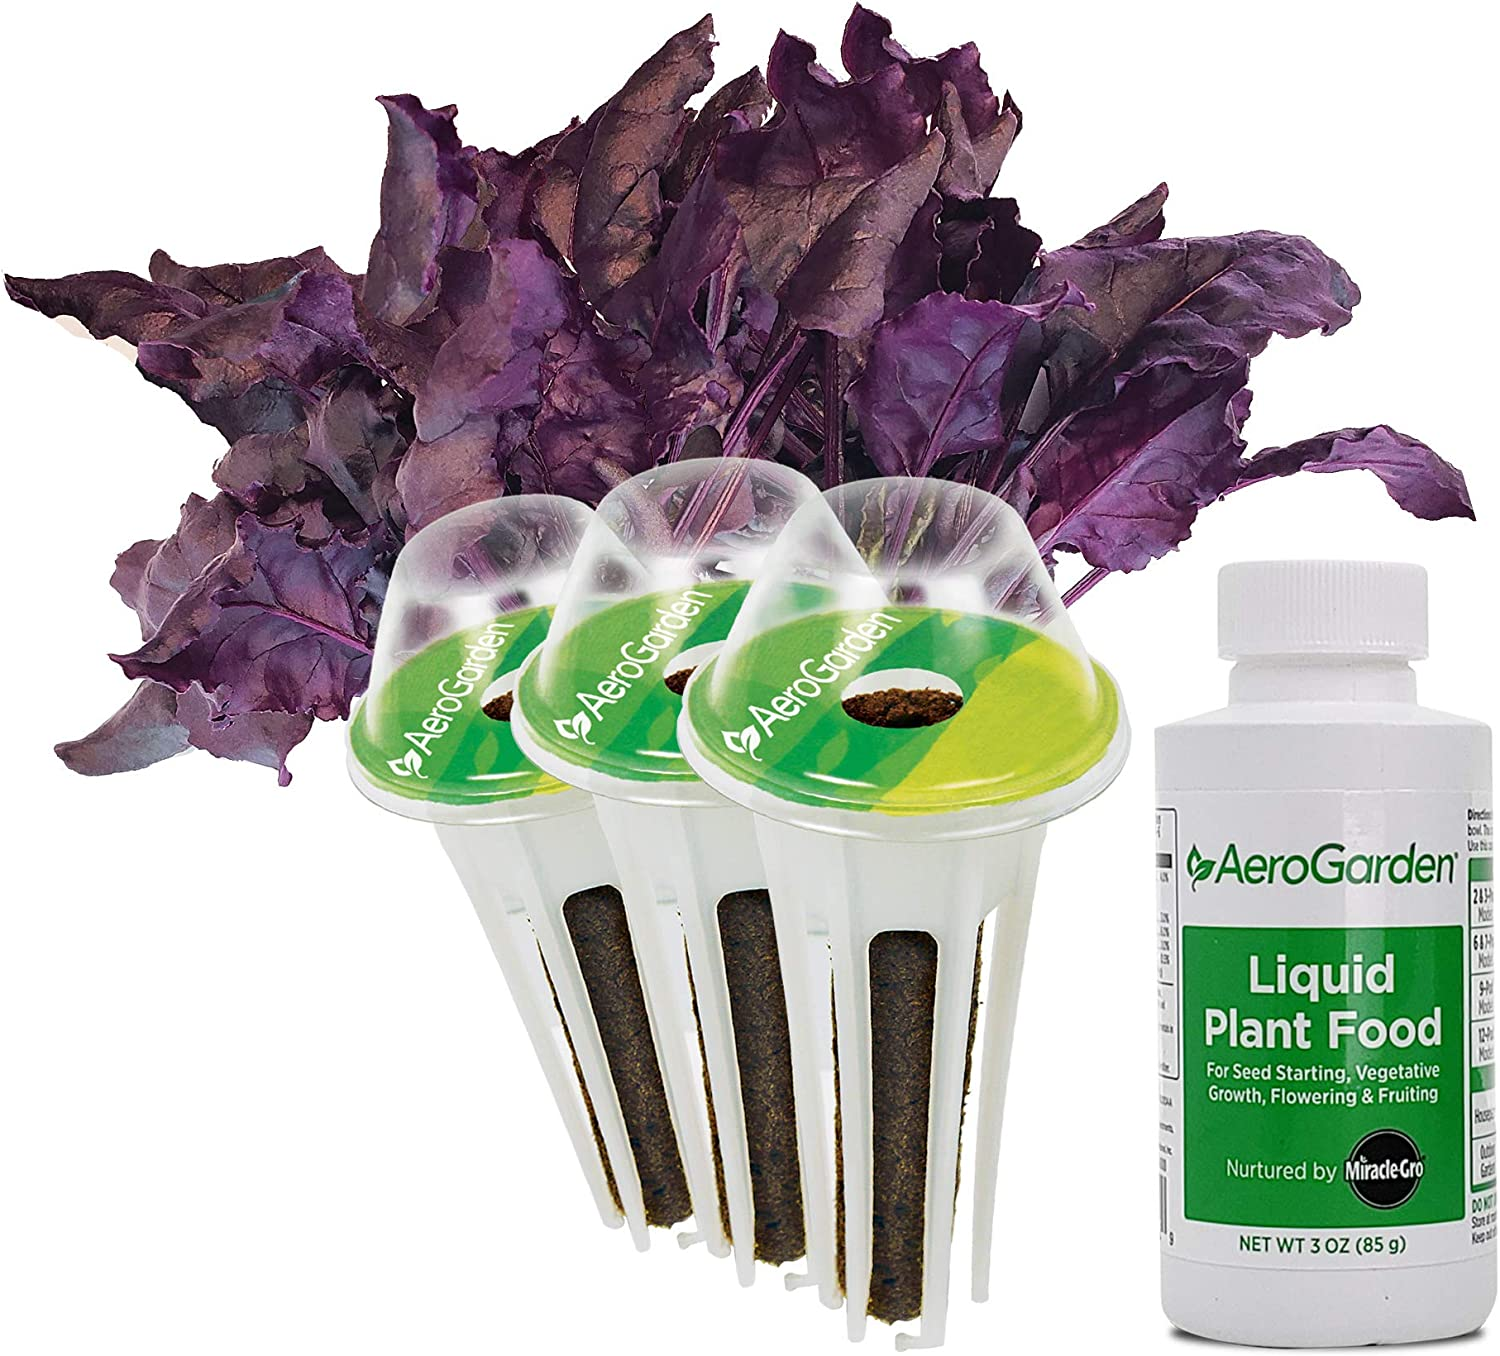 AeroGarden Beet Greens Seed Pod Kit, 3